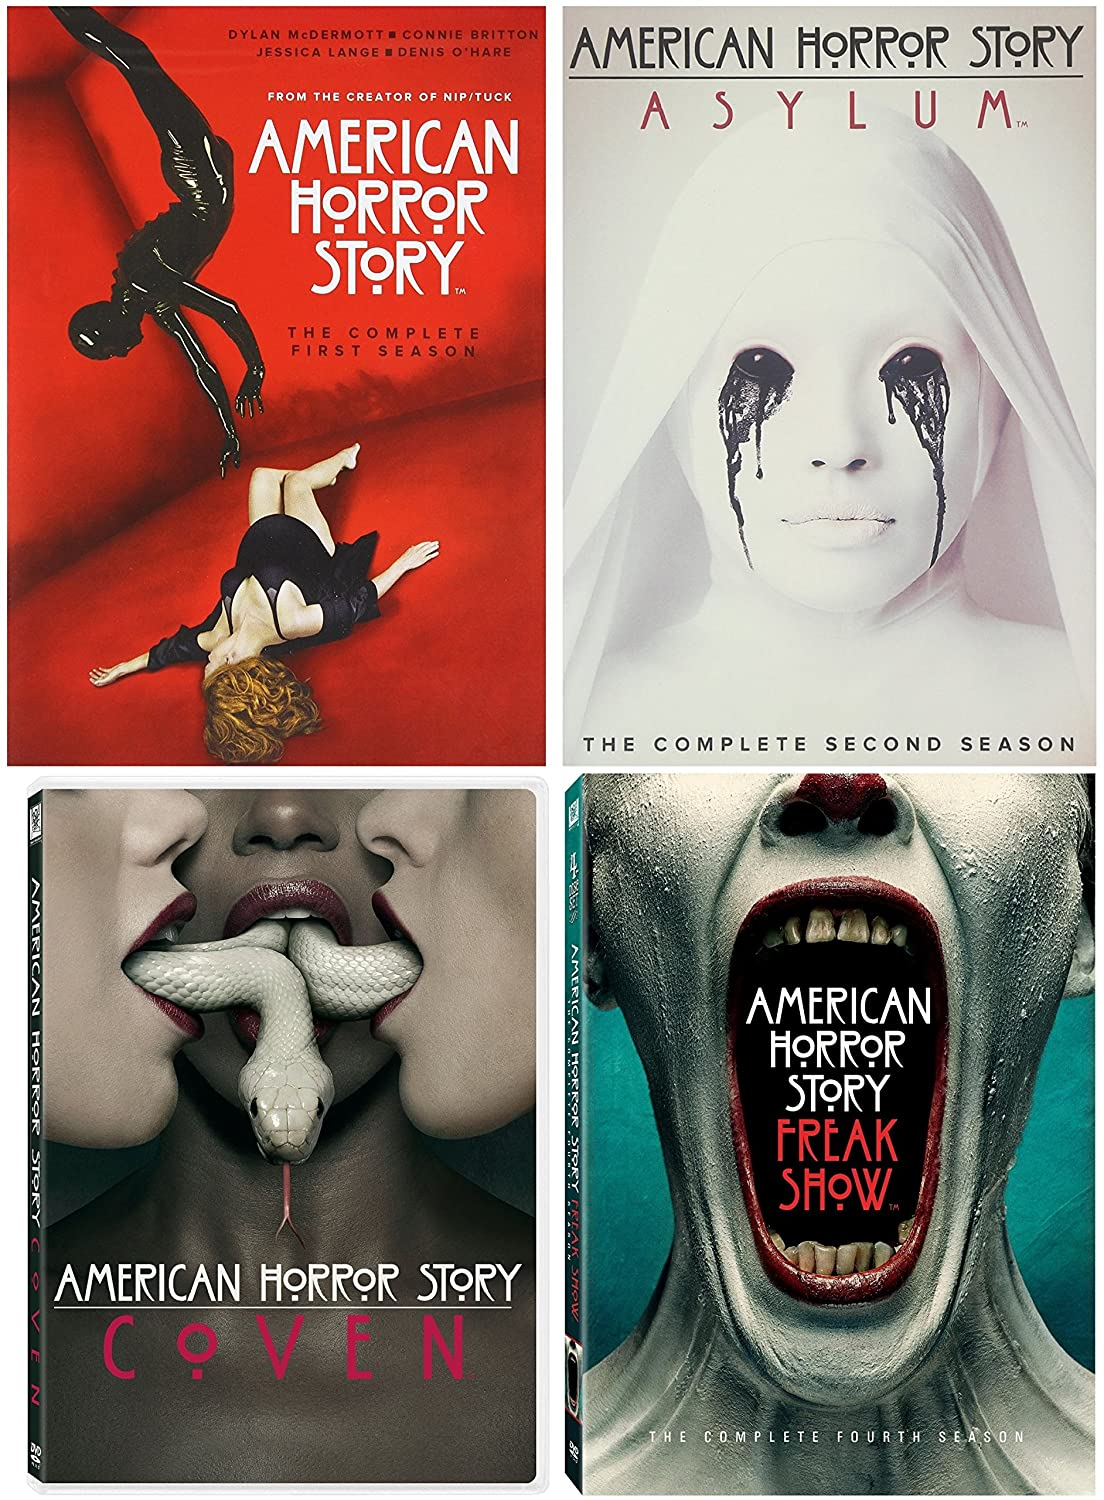 American Horror Story: Seasons Max 60% OFF 1 - Collection 4 Limited time sale Complete